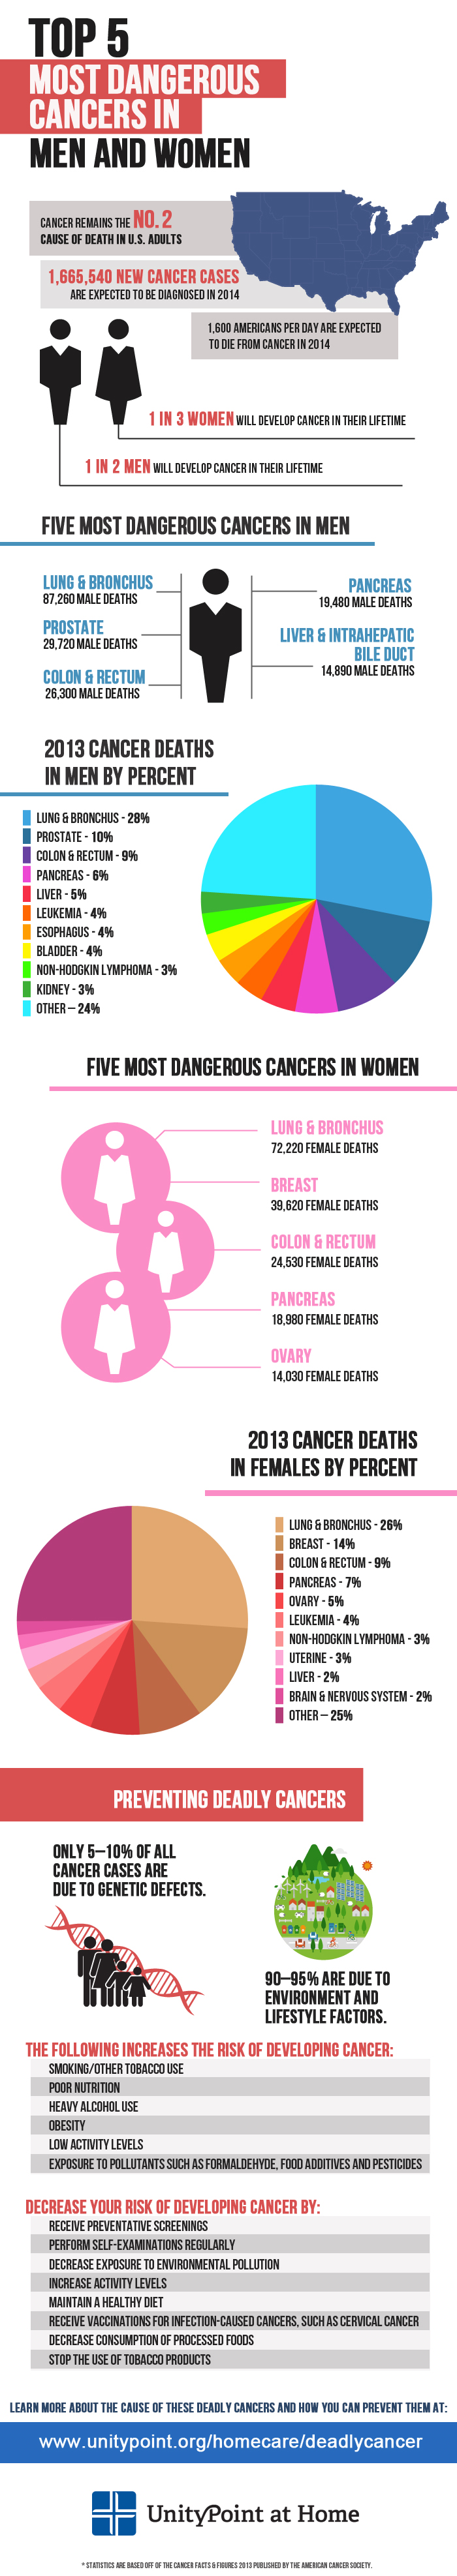 Top 5 Most Dangerous Cancers in Men & Women